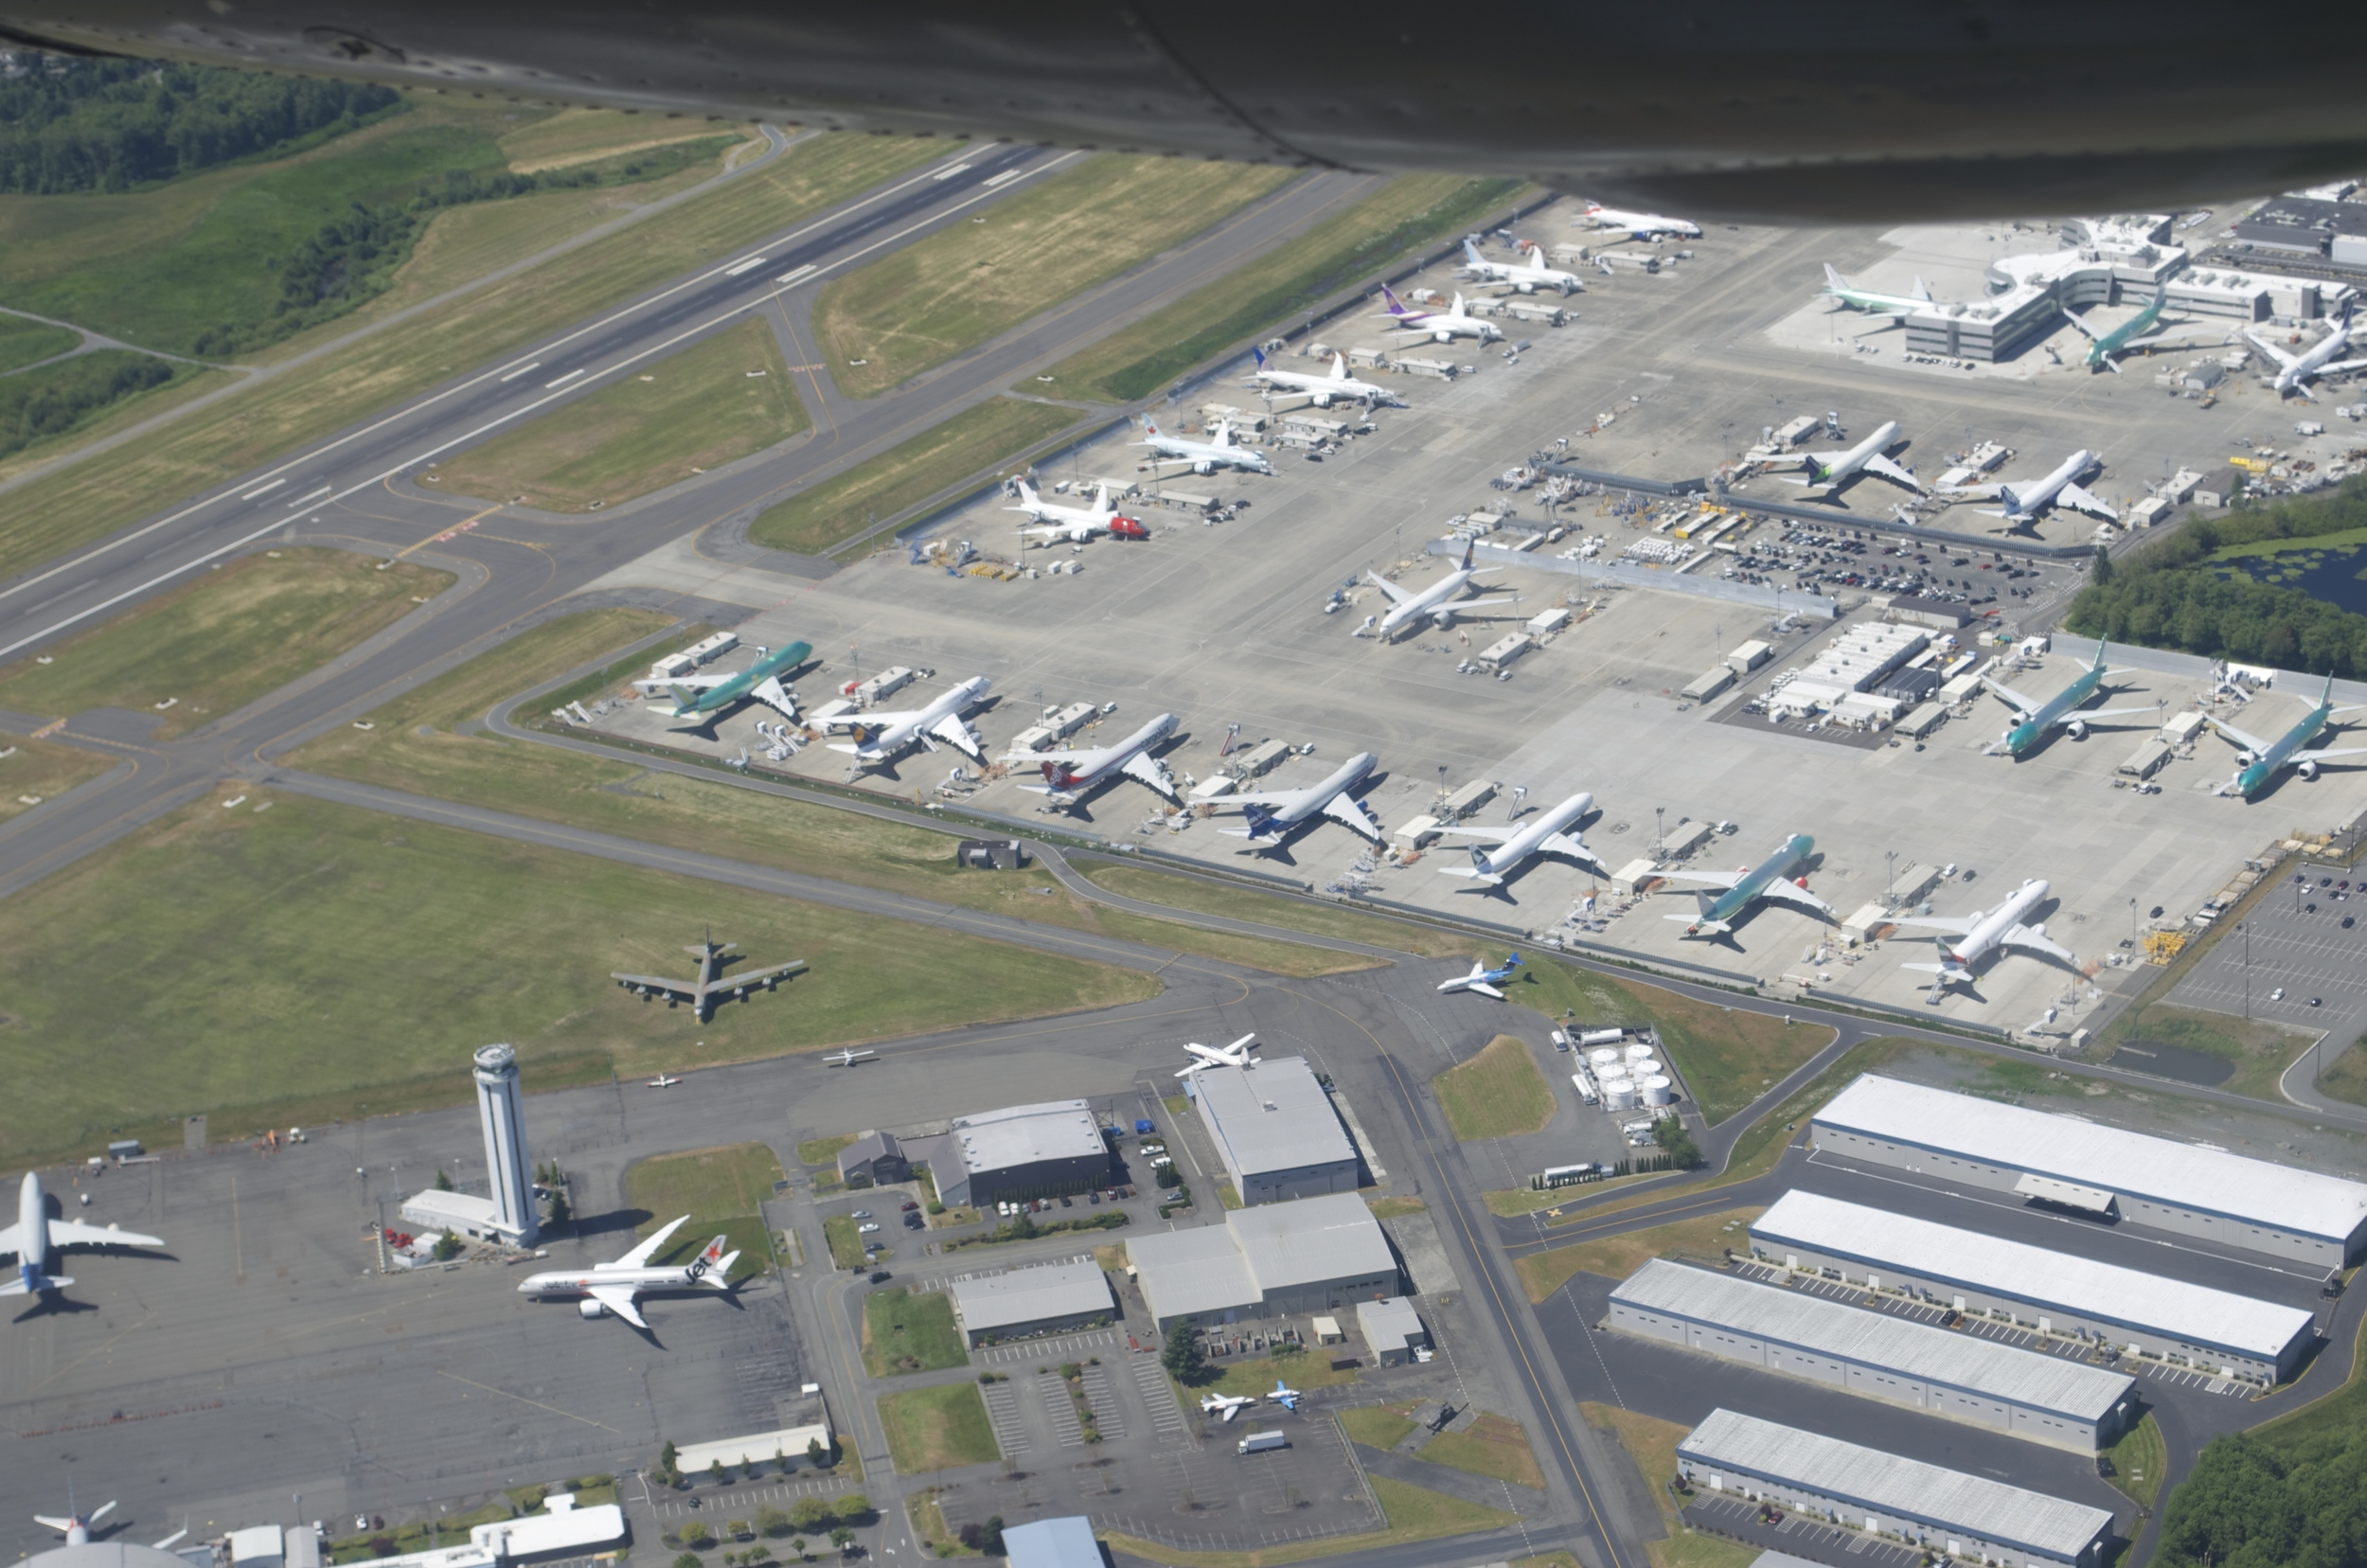 Circling Paine Field- B-52 on the grass among the commercial jets being prepared for delivery.